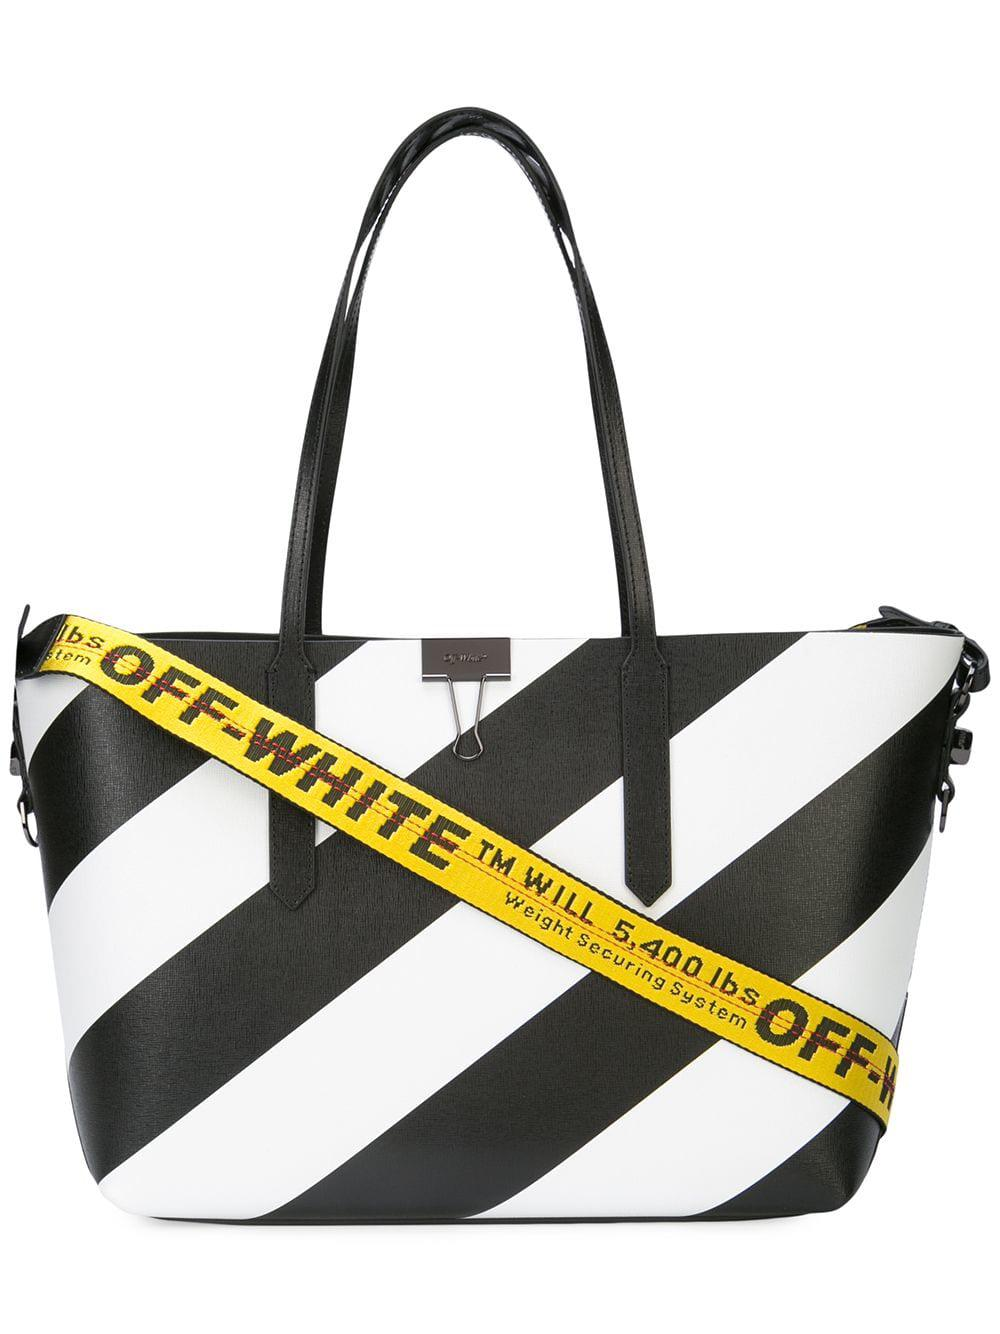 ce89d1fc4257 Lyst - Off-White c o Virgil Abloh Black And White Tote Bag in Black